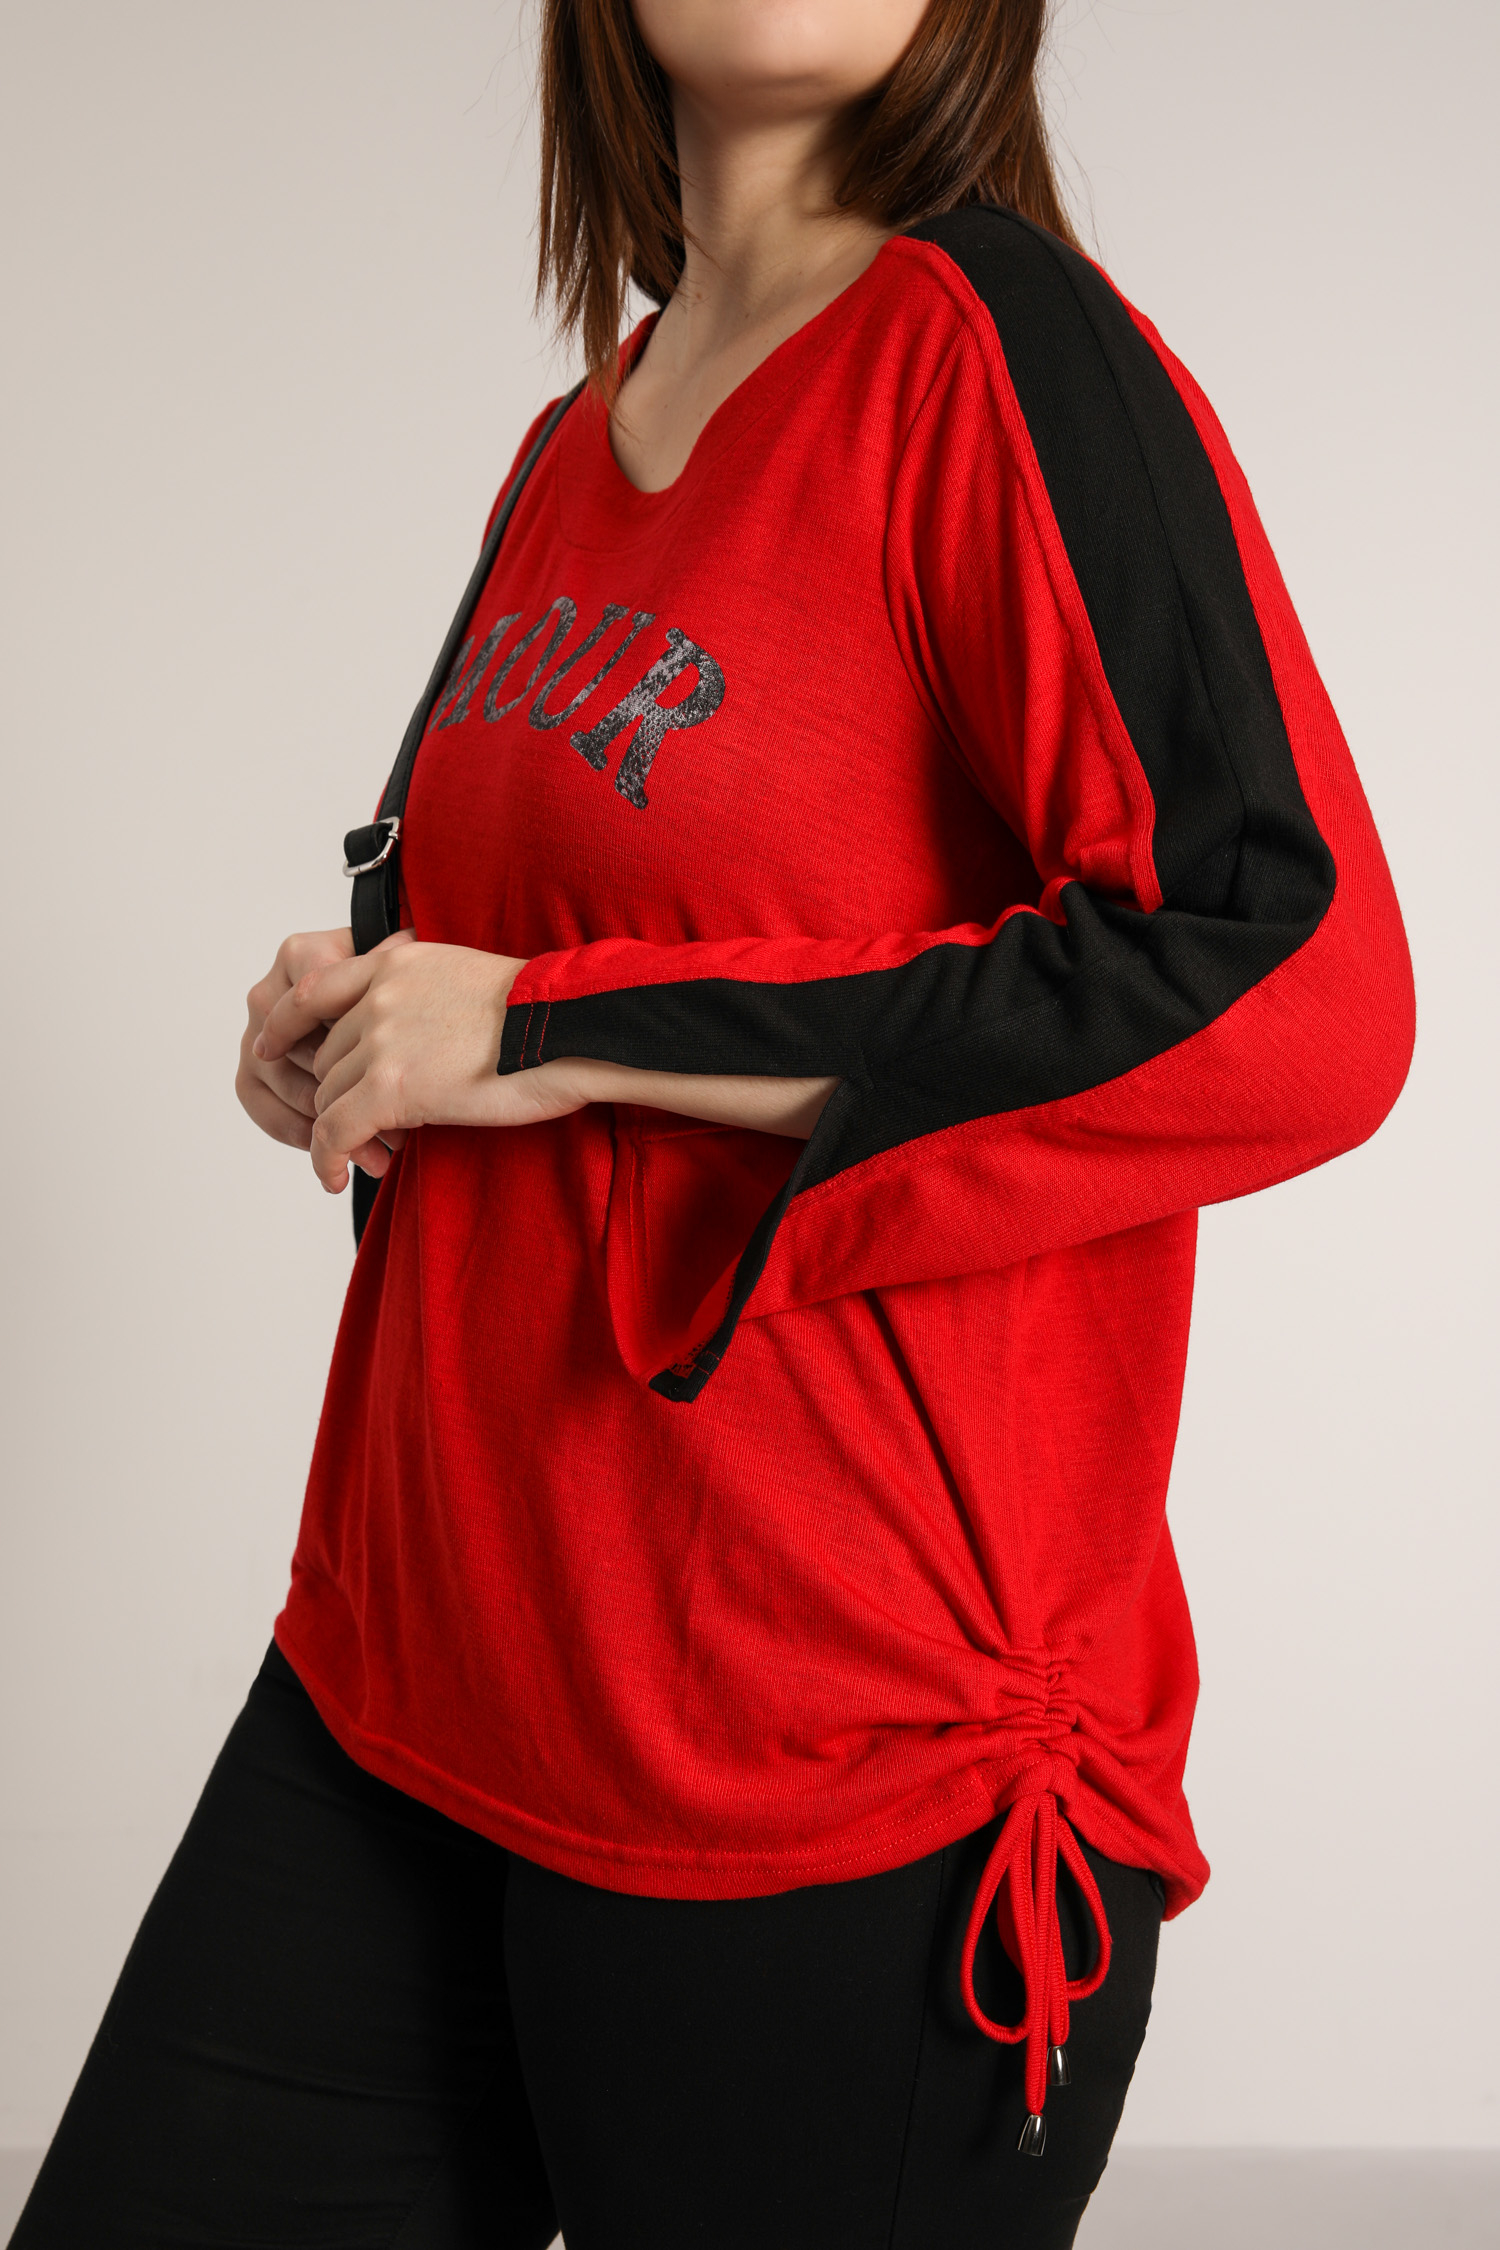 Two-tone knit sweater with serigraphy